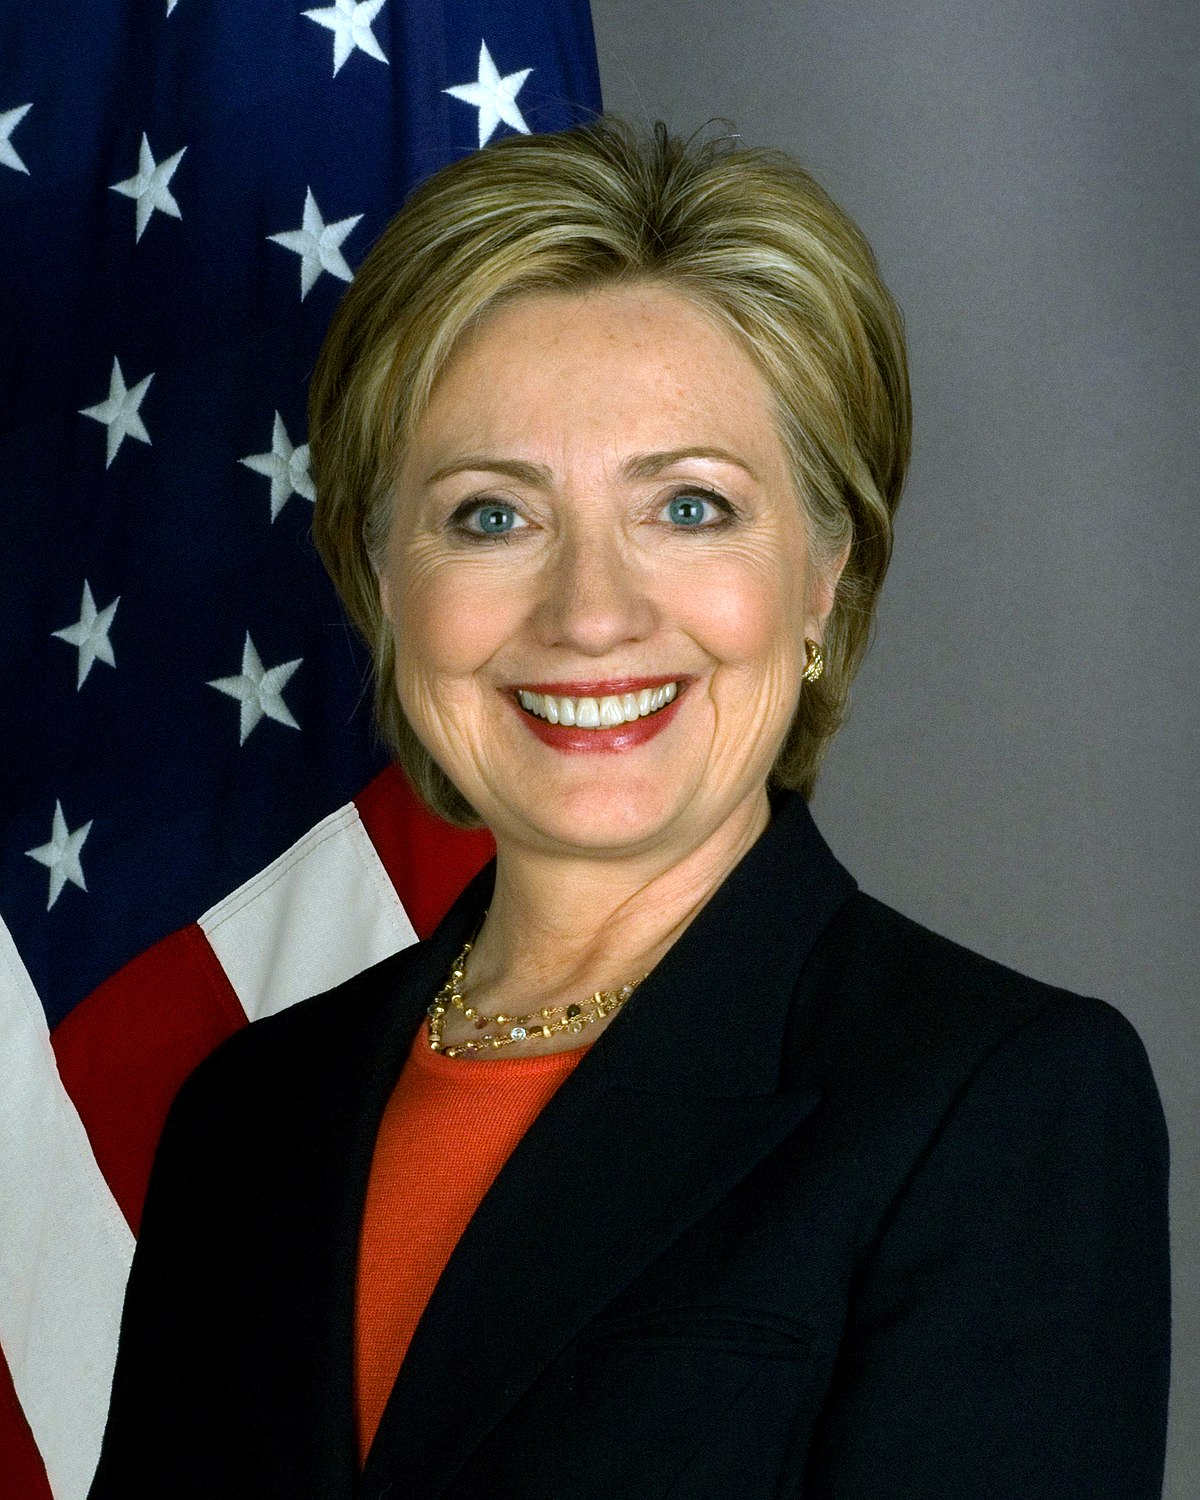 Formal portrait of Hillary Rodham Clinton with flag, 2009